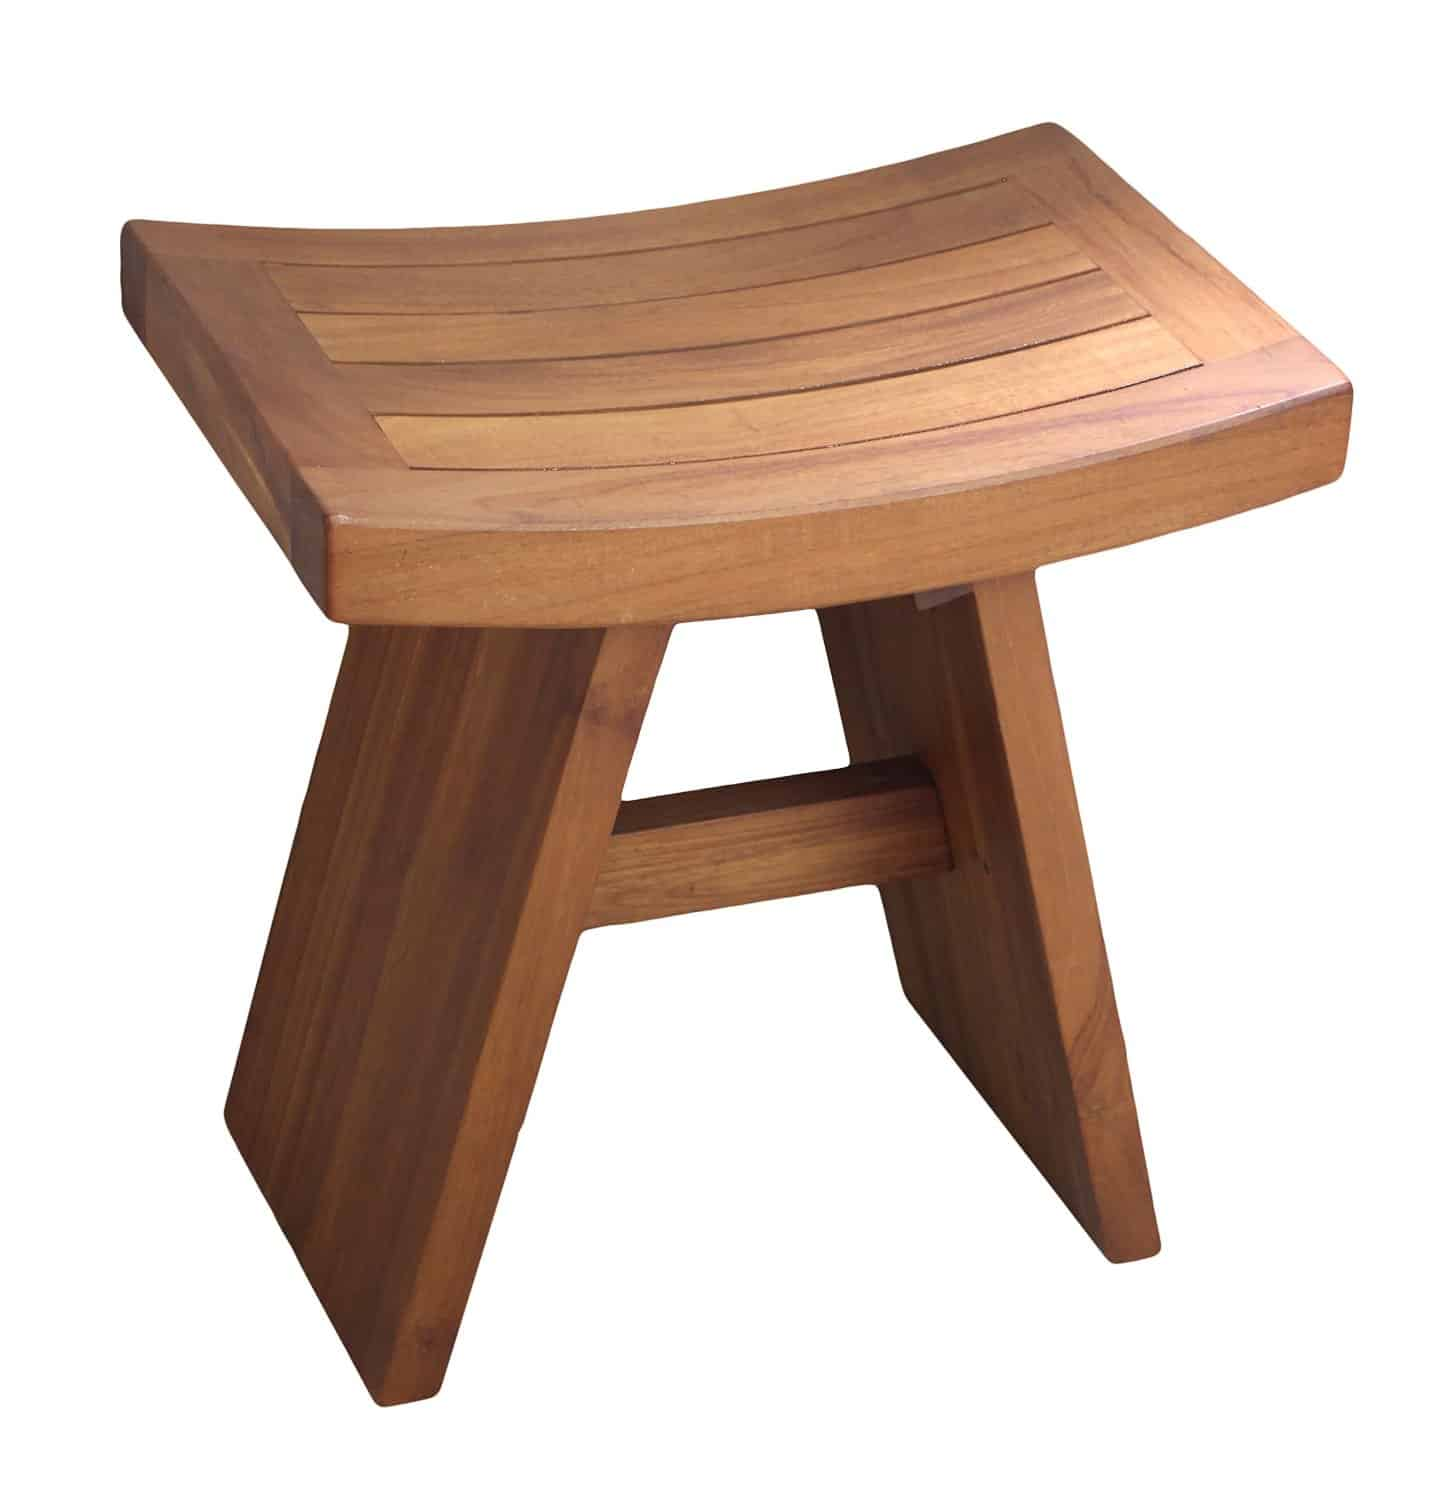 seat Archives - Teak Shower Bench| Teak Shower stool| Teak furniture